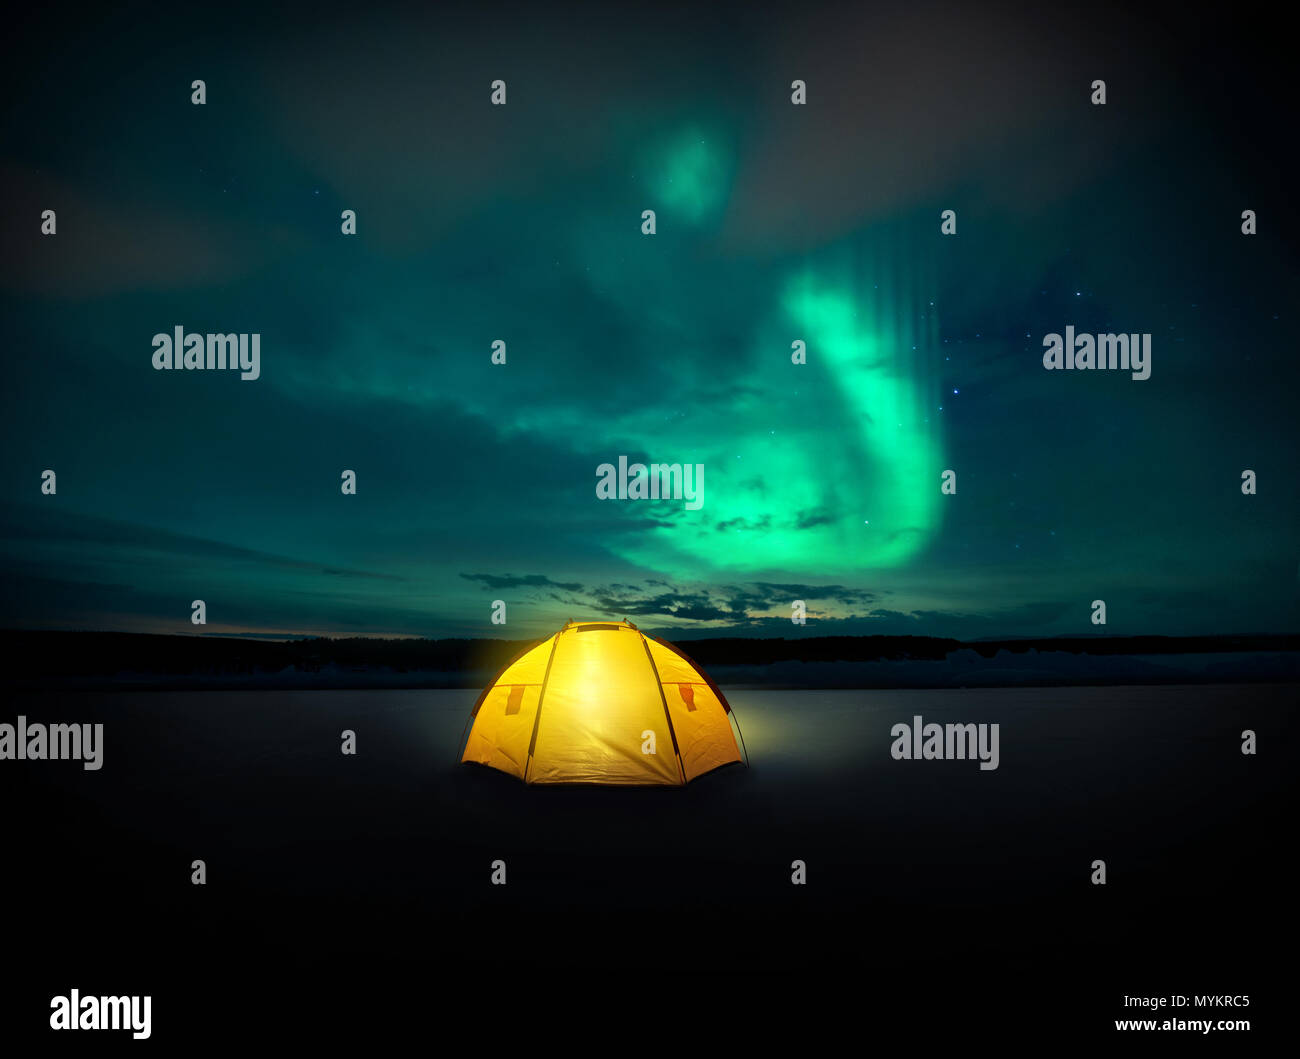 Out in the wilderness The Norther lights ( Aurora Borealis) dances across the night sky in Sweden, above the glowing lights from the camping tent. Pho - Stock Image